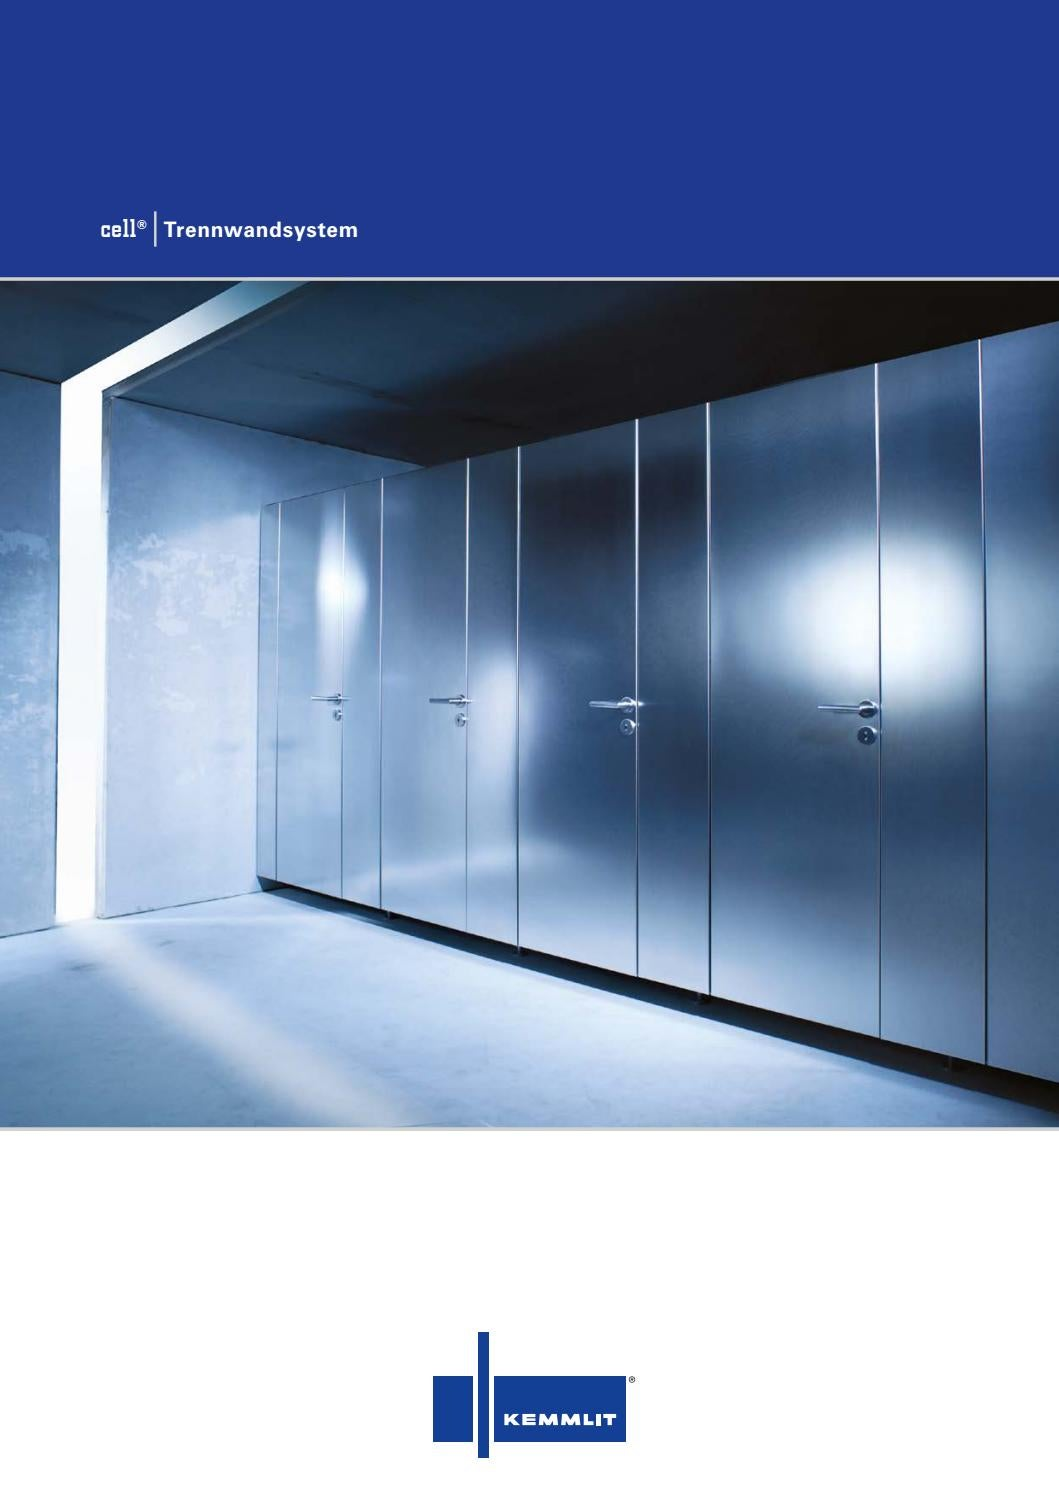 Wc Trennwände Wandanschluss Trennwand Cell By Marat Consulting Company Issuu